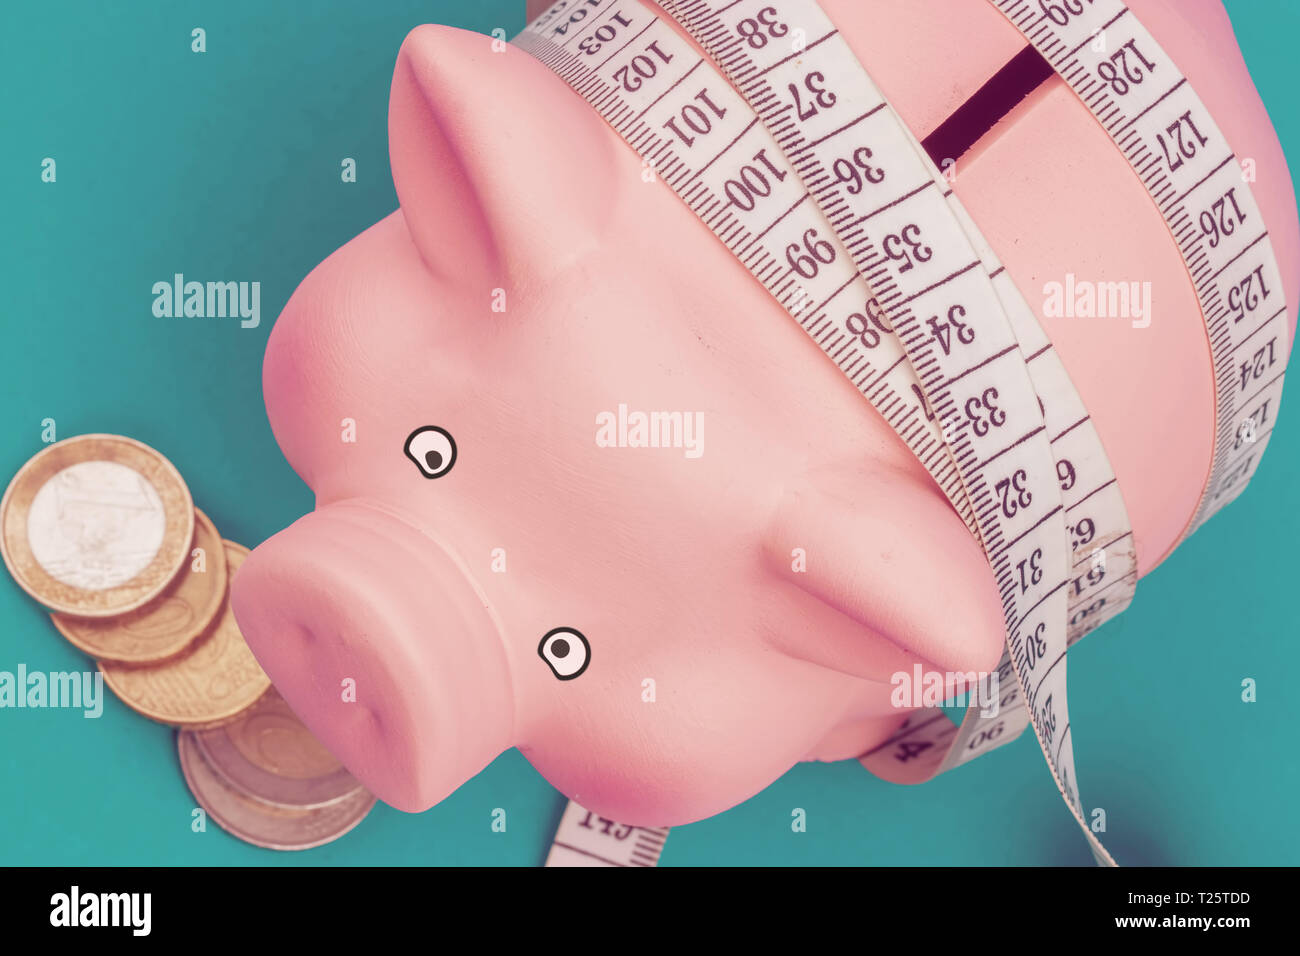 Investments and metering or counting idea. Ceramic toy pig with white flexible ruler on blue background. - Stock Image